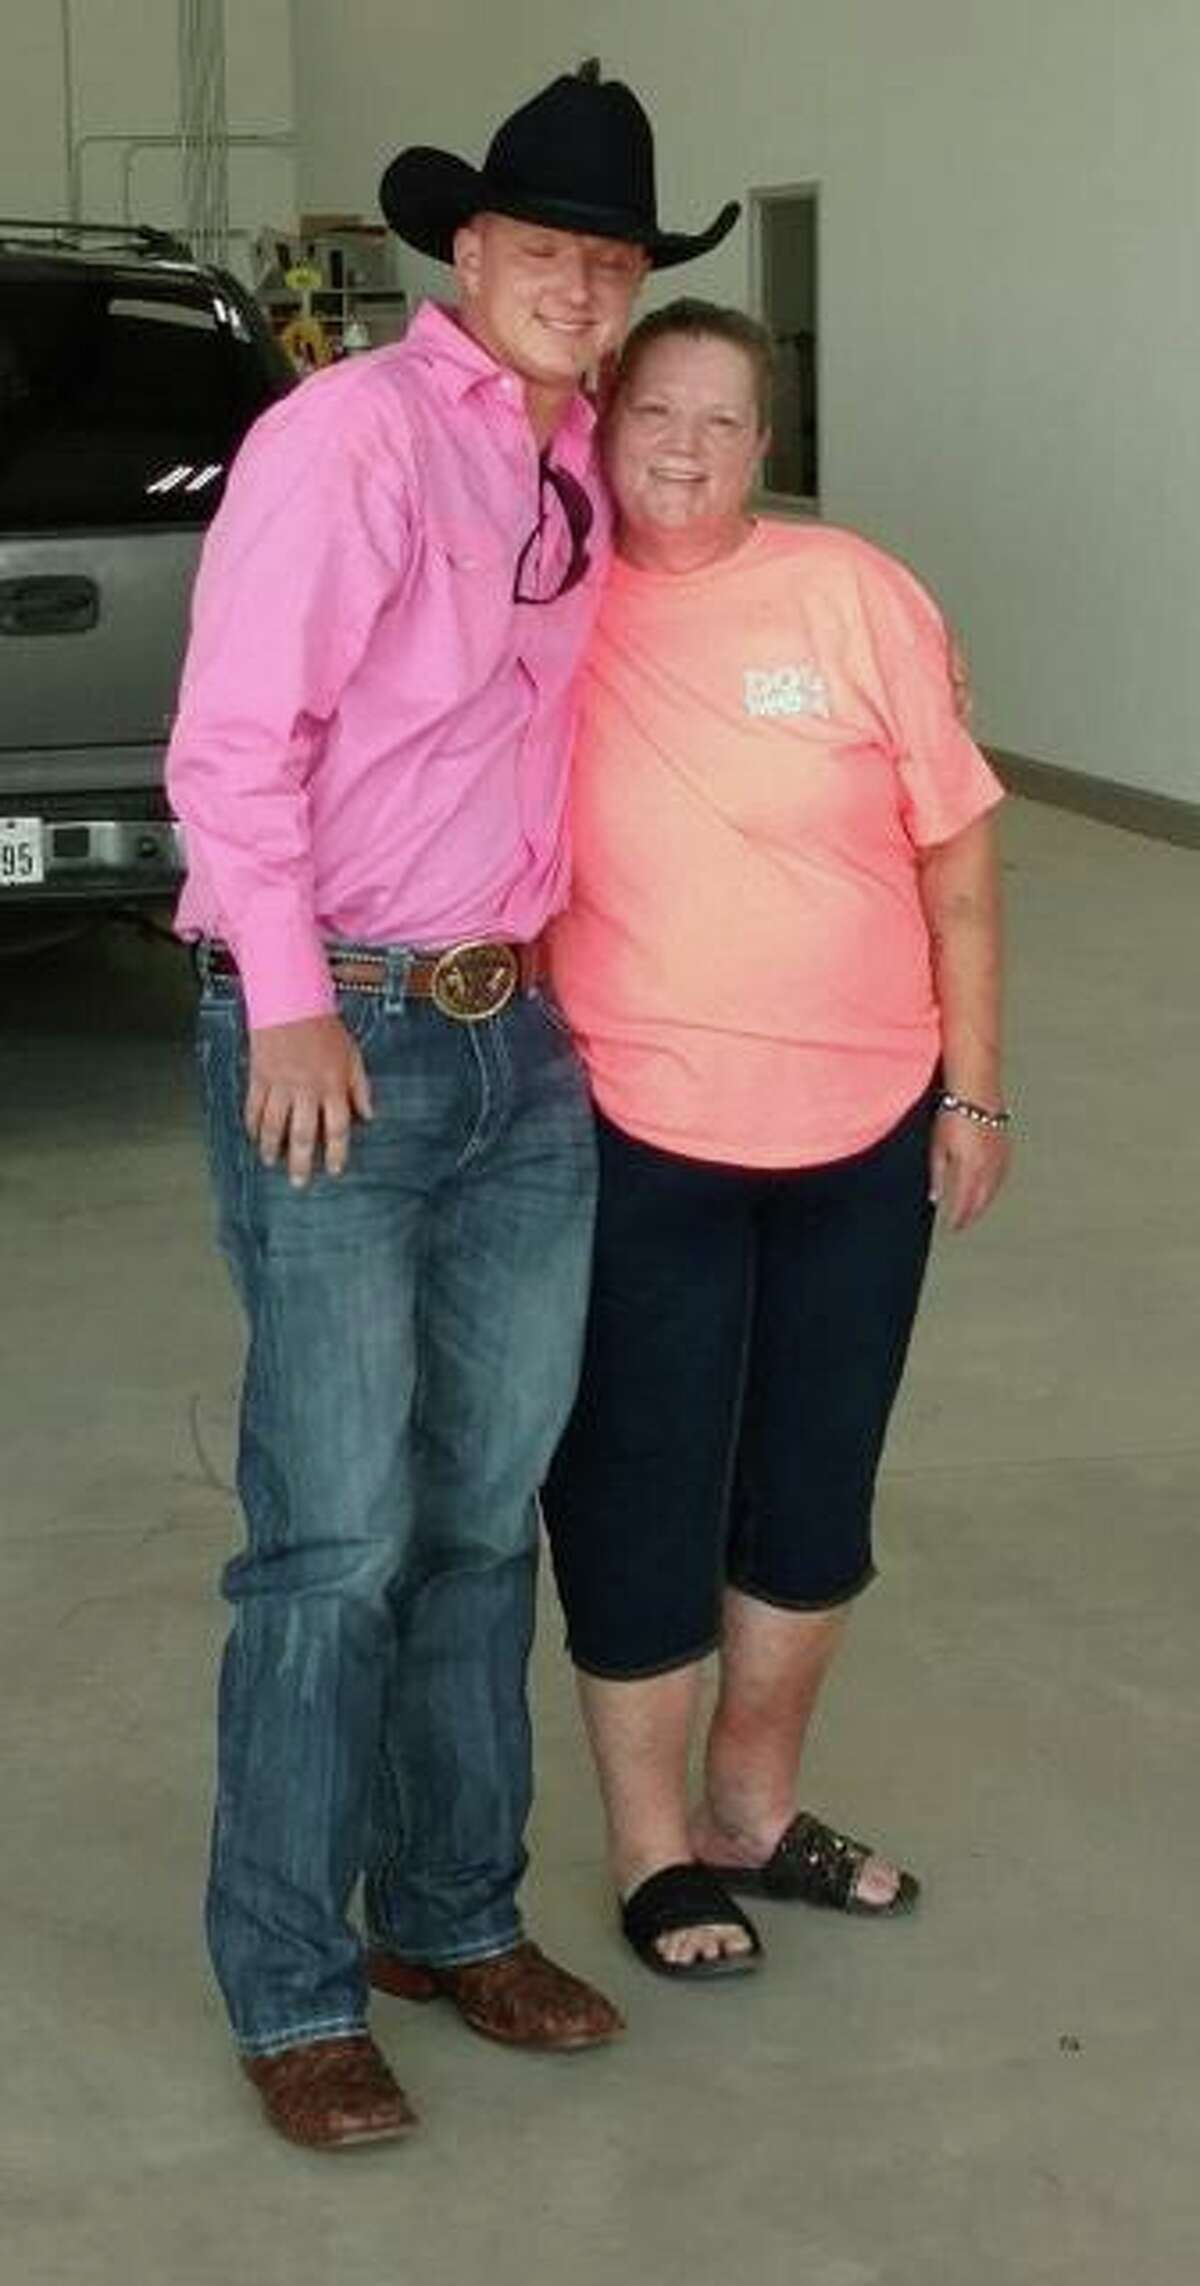 Devin Custer, 27, with his mother, Tracie Custer.